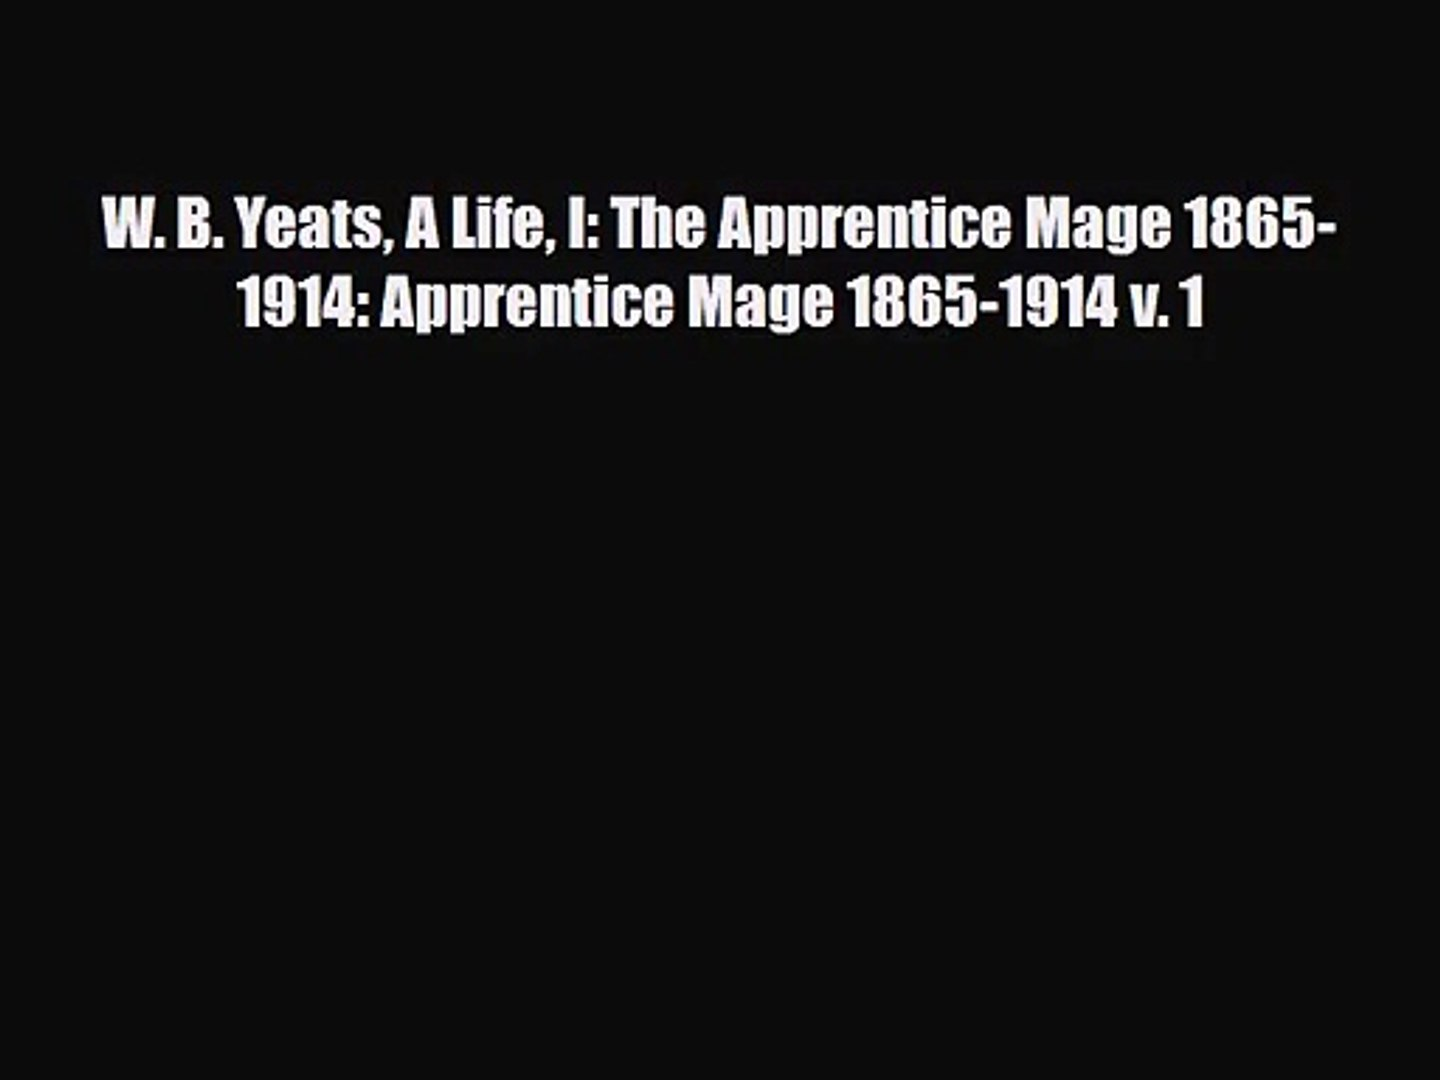 W. B. Yeats A Life I: The Apprentice Mage 1865-1914: Apprentice Mage 1865-1914 v. 1 [PDF Download]